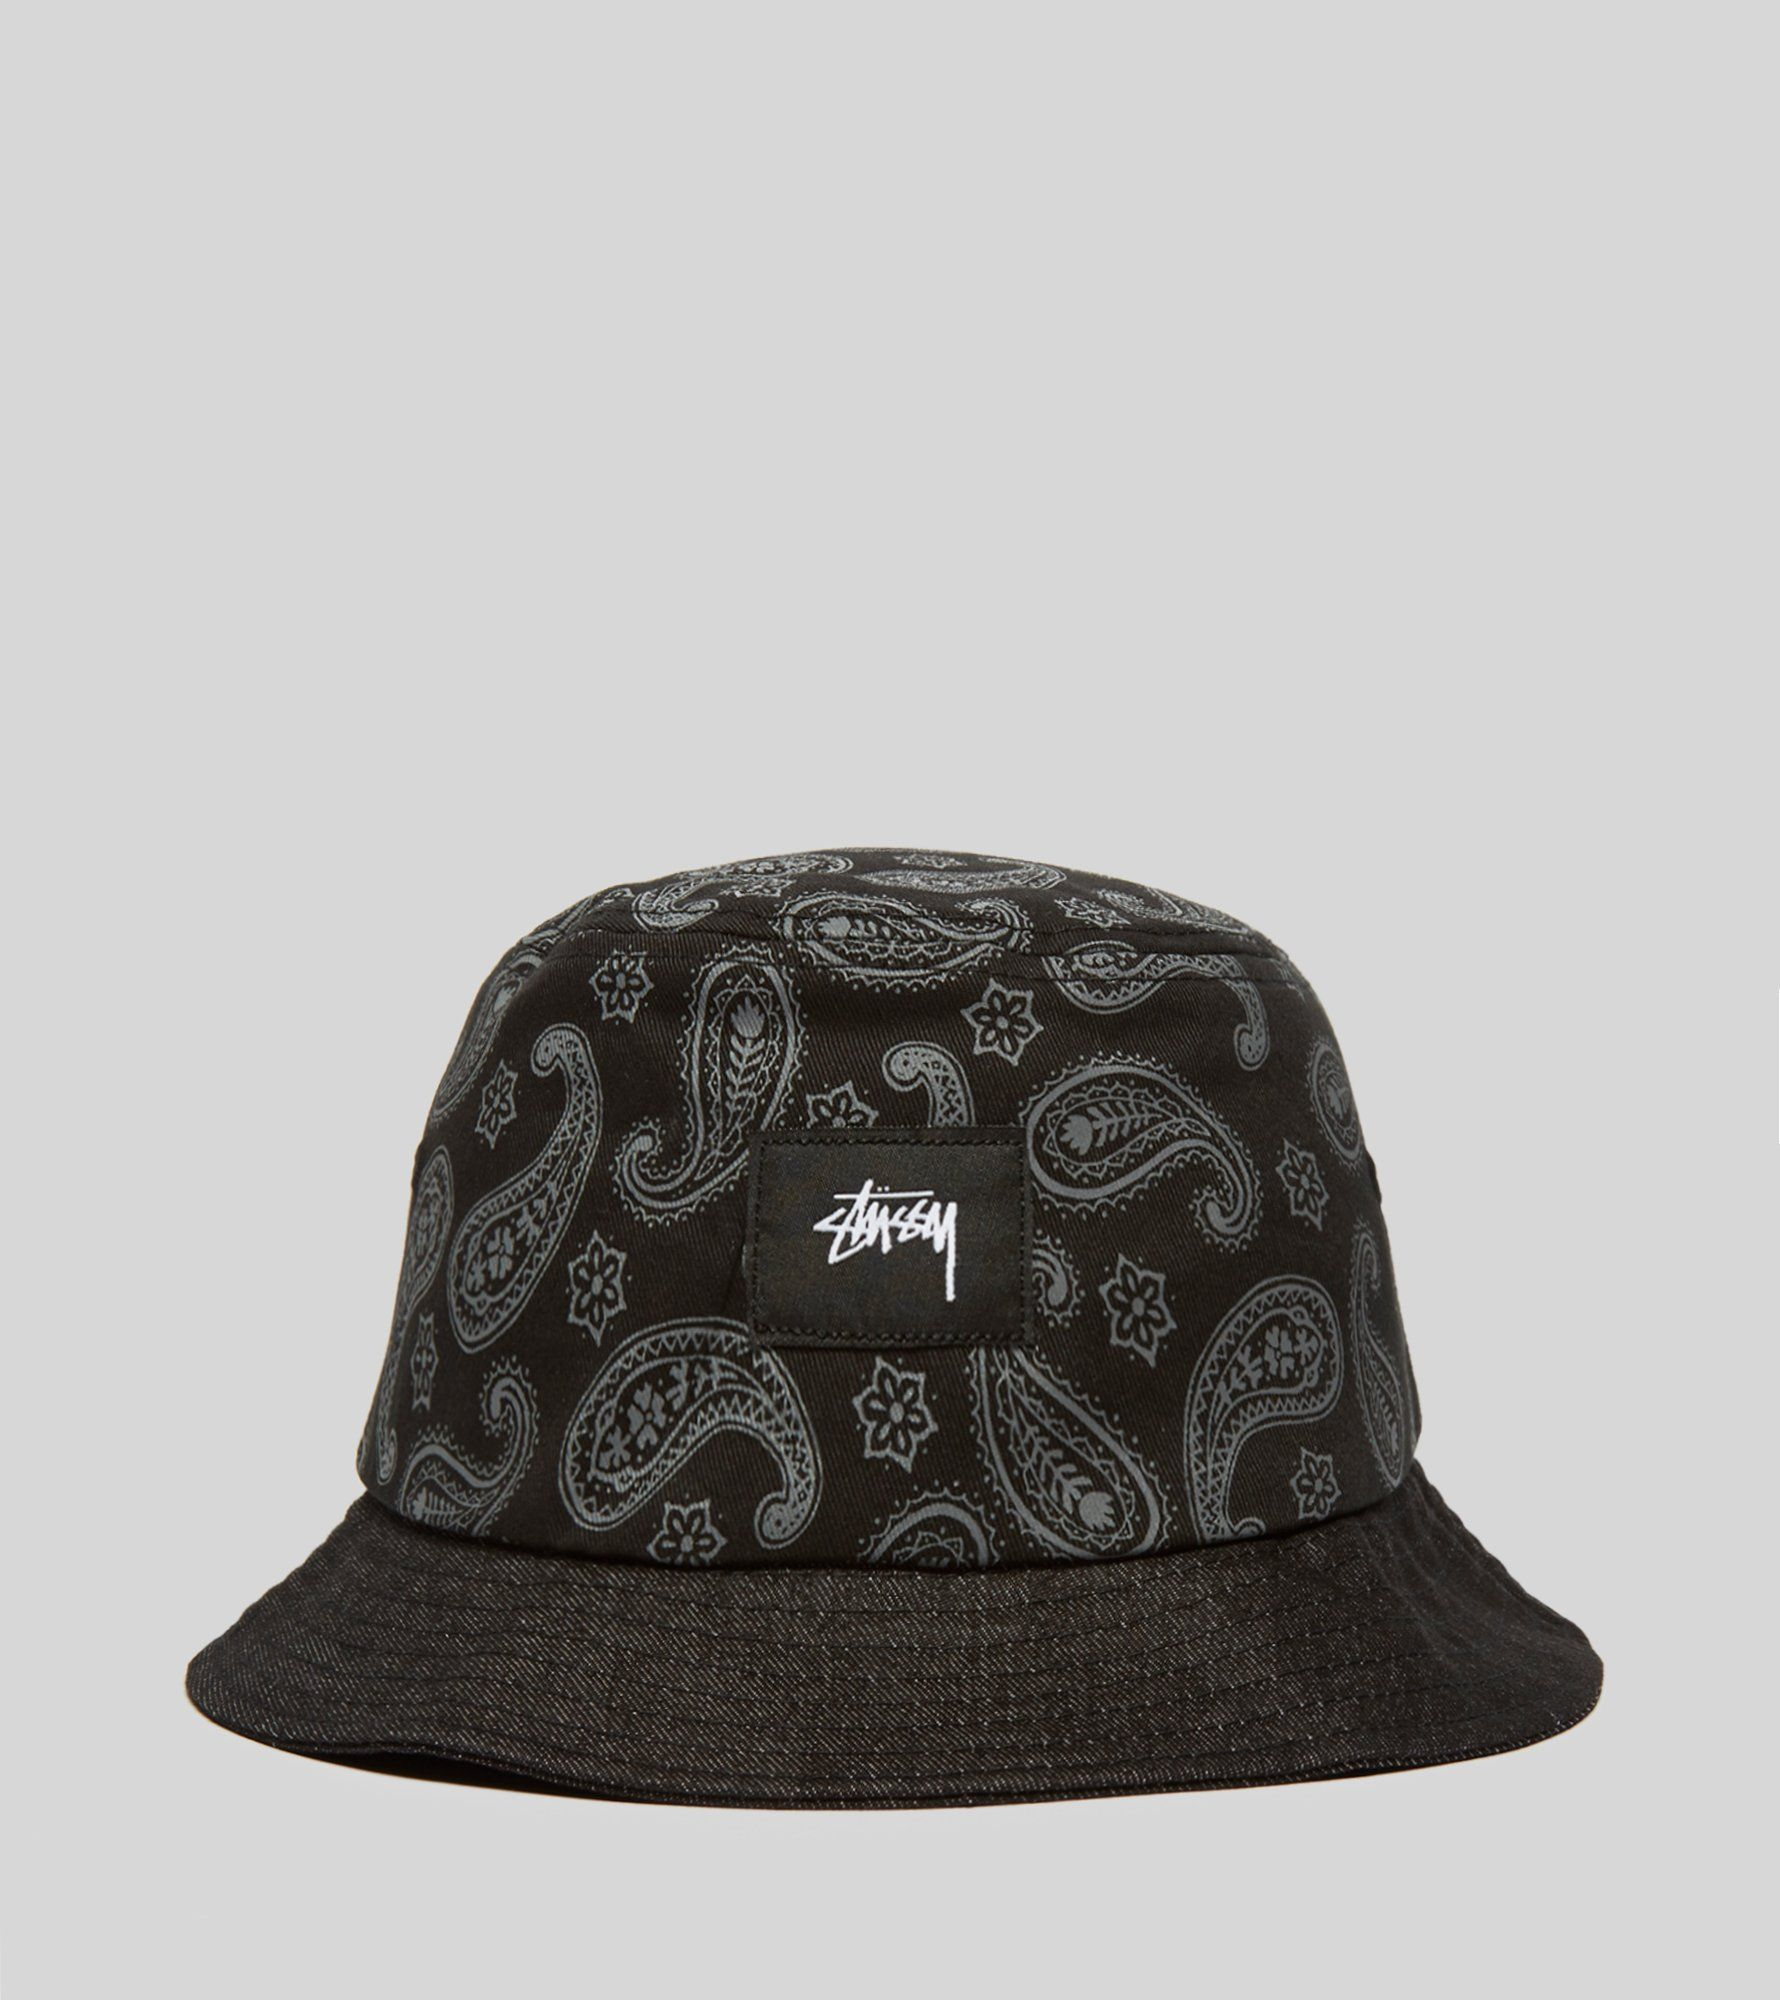 stussy bucket hat navy - HD 1780×2000